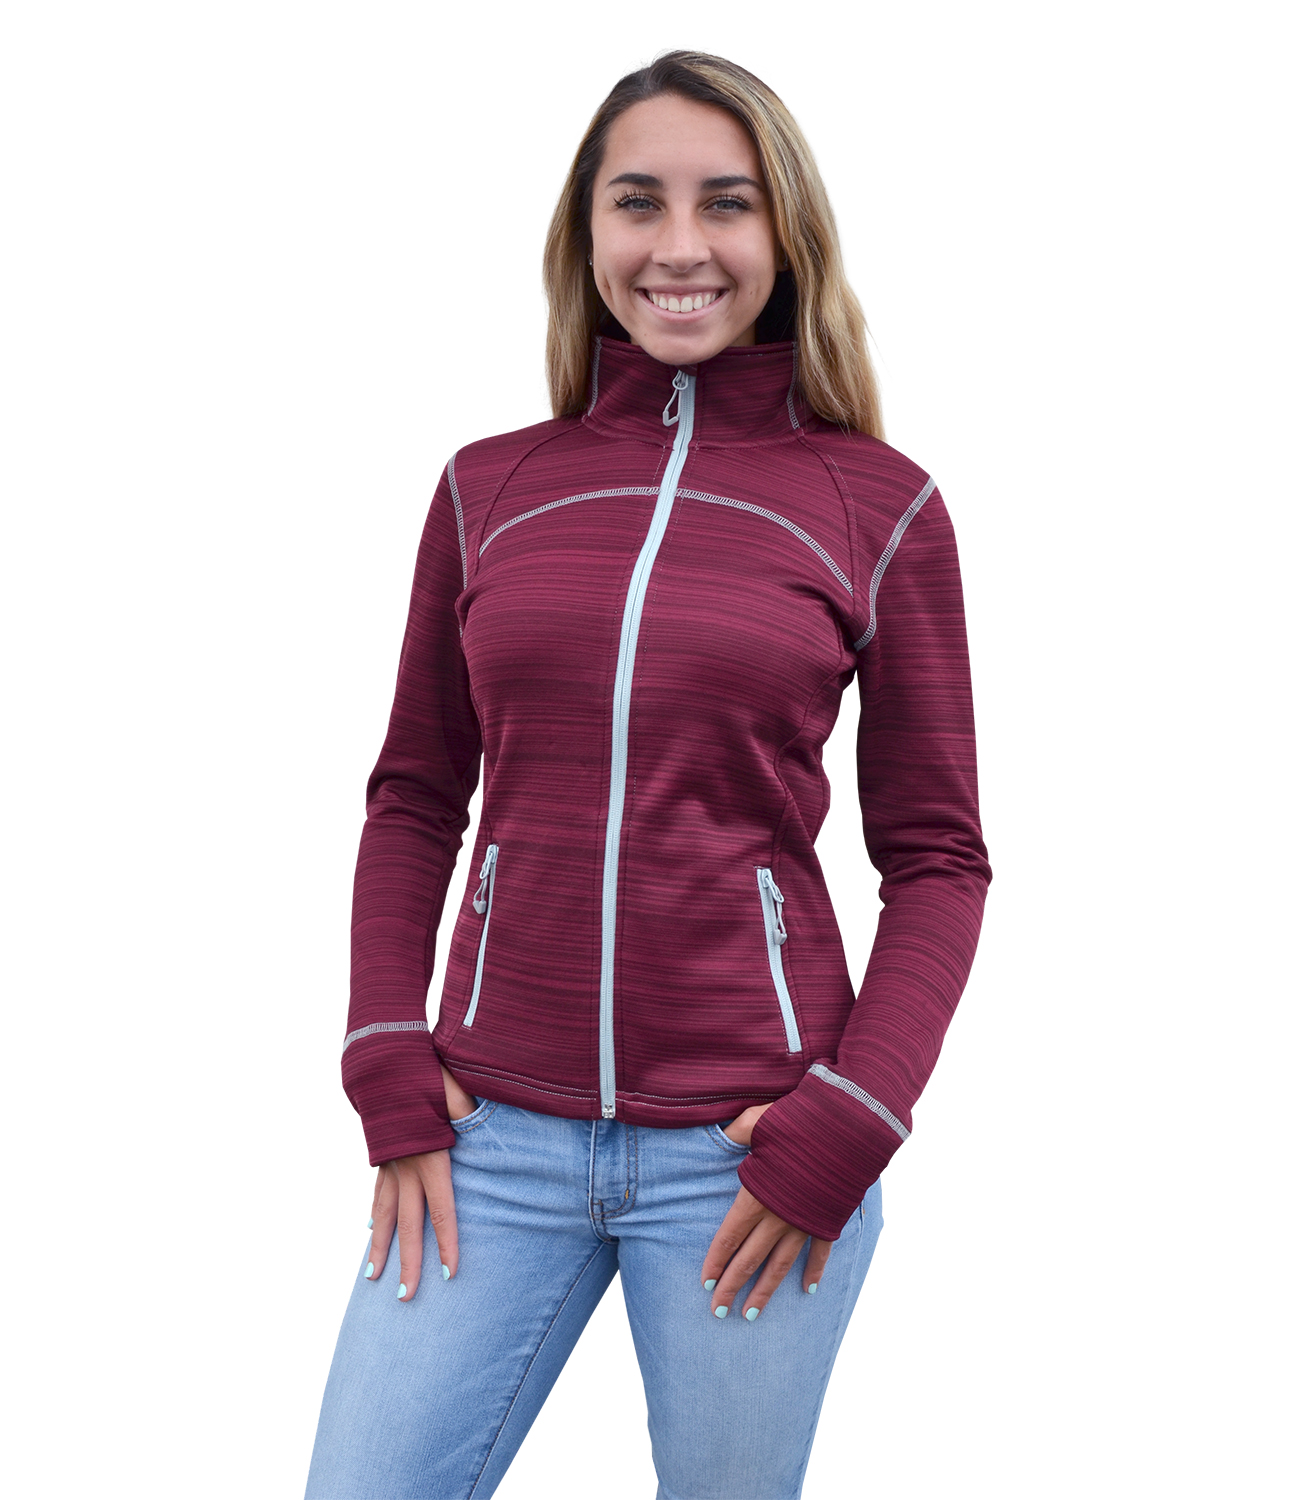 Renegade club women full zip power stretch jacket, zipper, red, blanks for embroidery